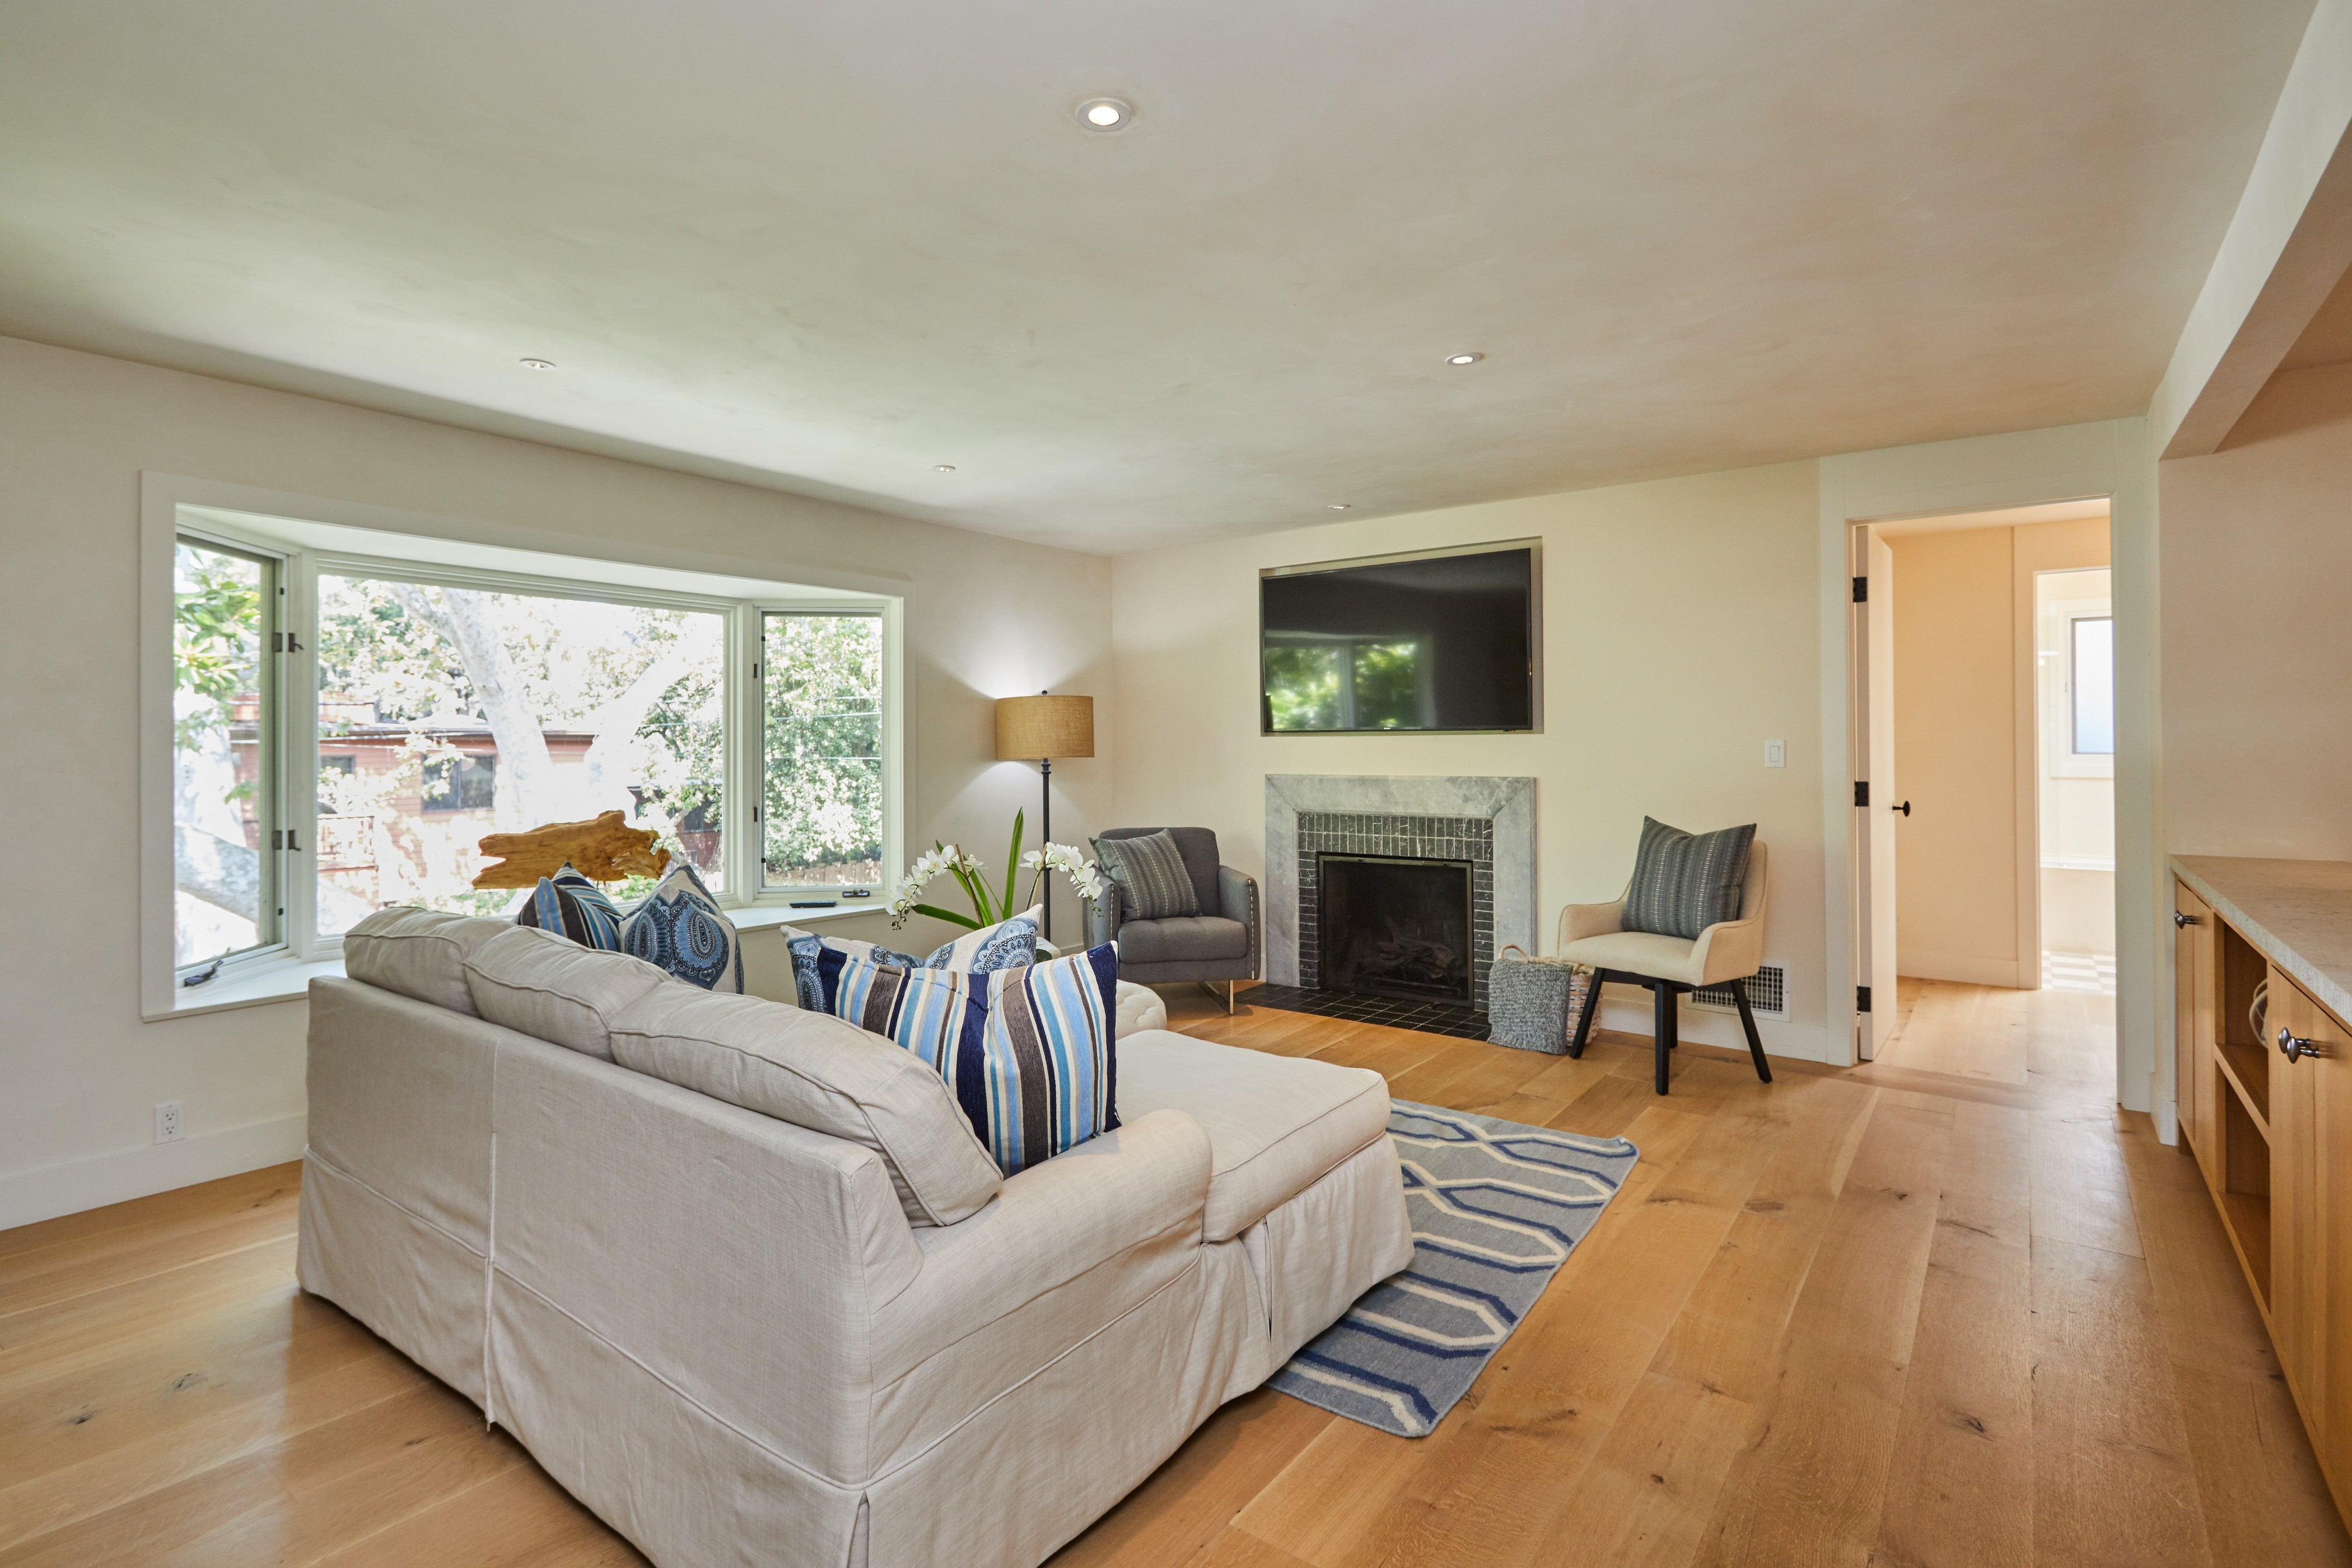 626 Bienveneda,Pacific Palisades,California 90272,3 Bedrooms Bedrooms,3 BathroomsBathrooms,Home,Bienveneda,1049